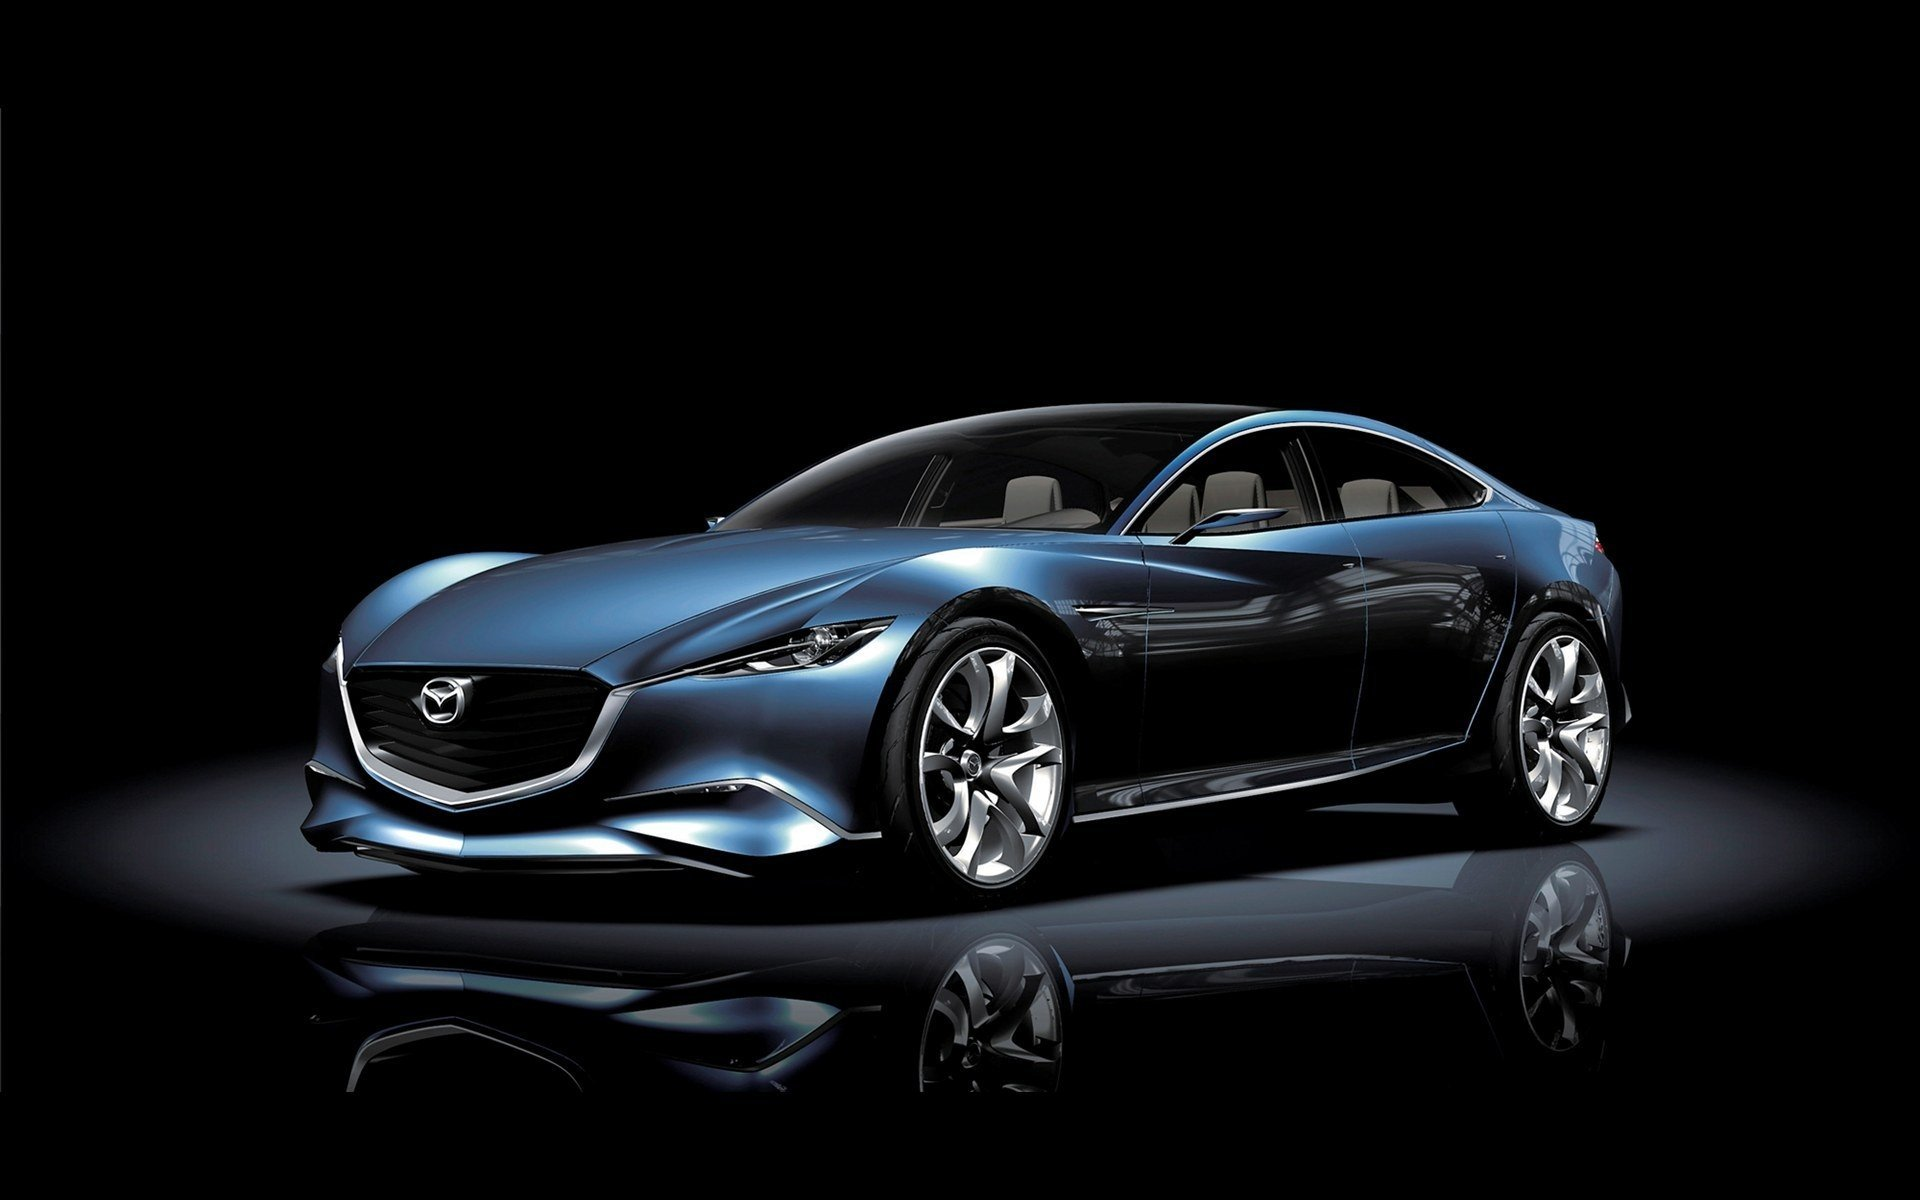 Mazda Full HD Wallpaper And Background Image